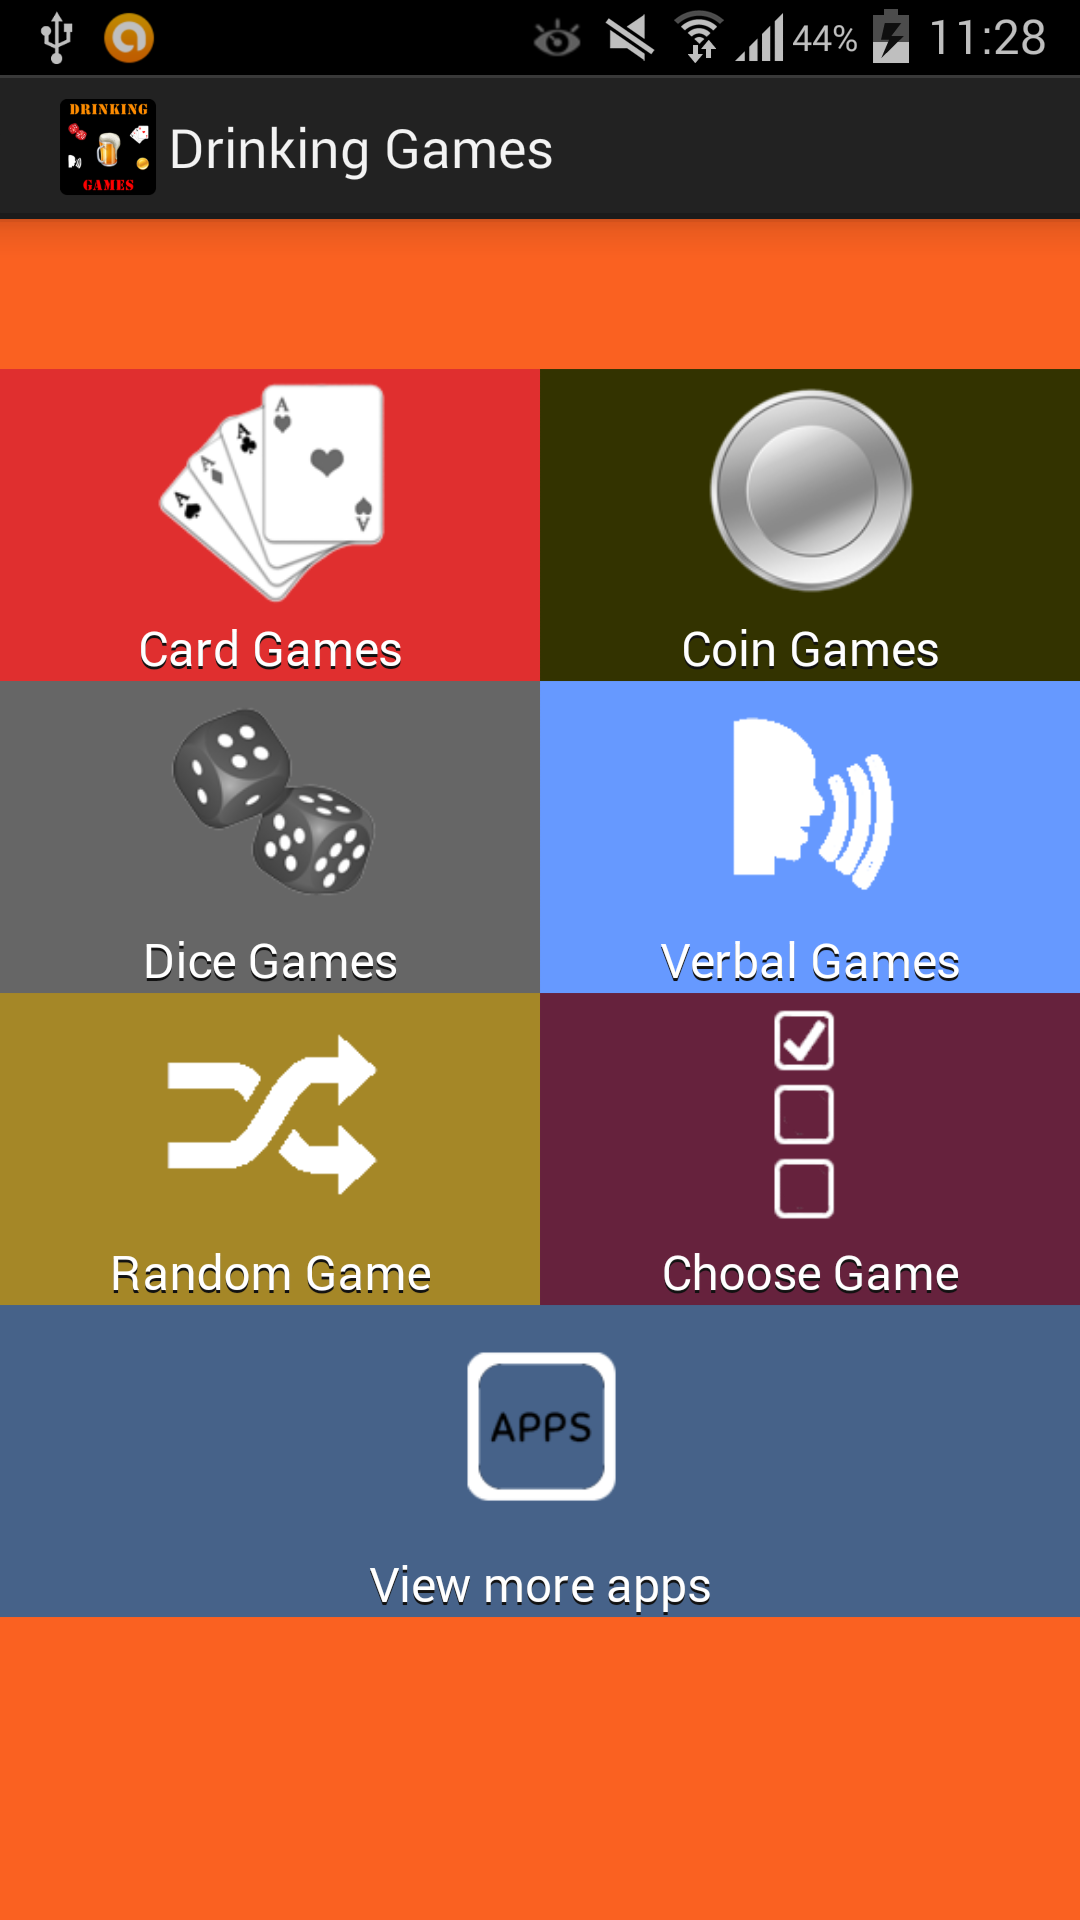 Amazon com: Drinking Games: Appstore for Android